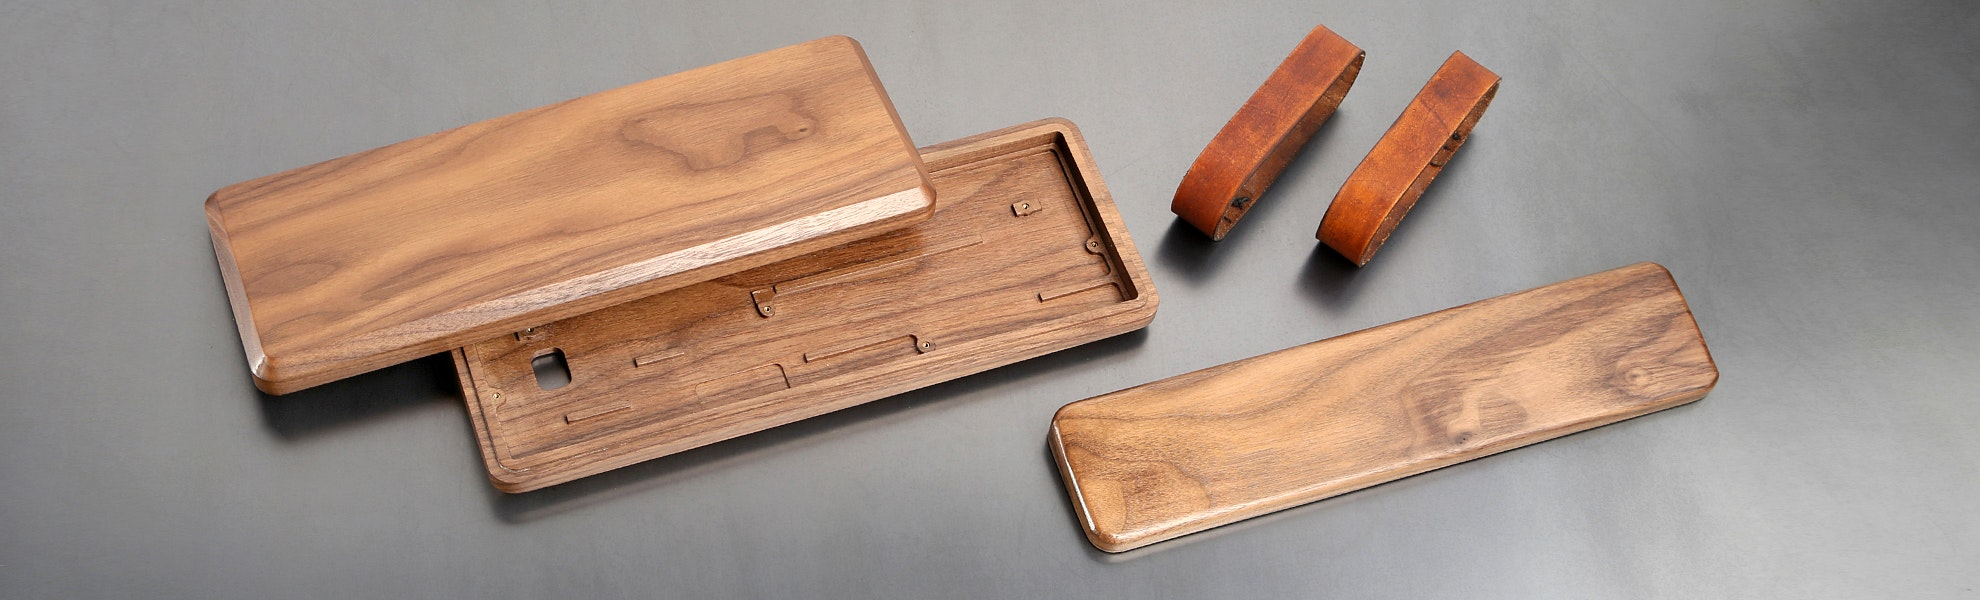 Datamancer POK3R Wood Pack